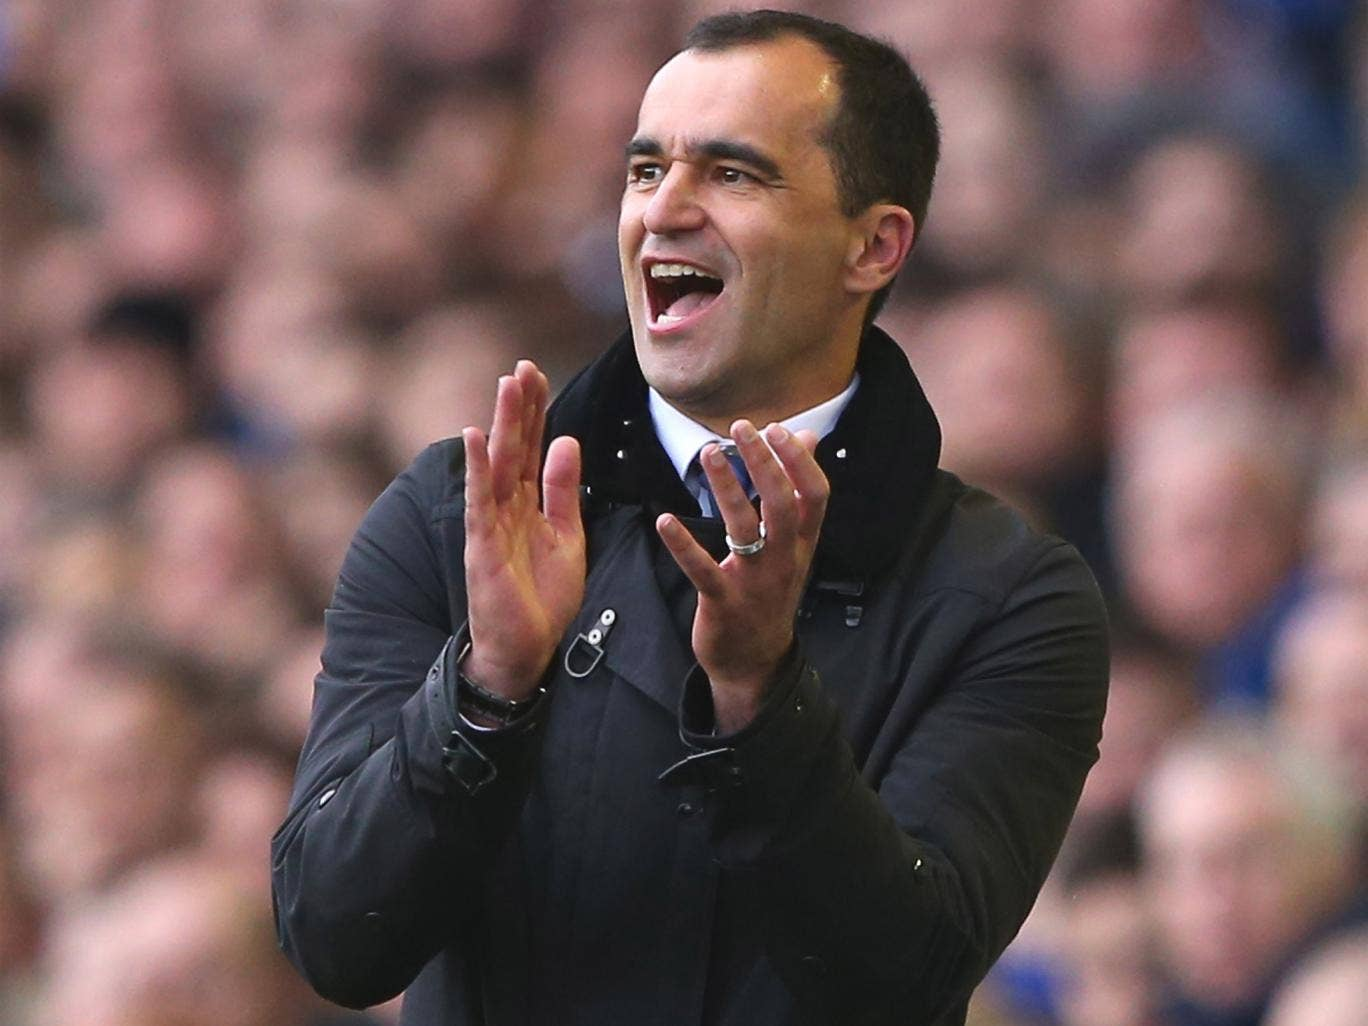 Everton have a record points tally under Roberto Martinez